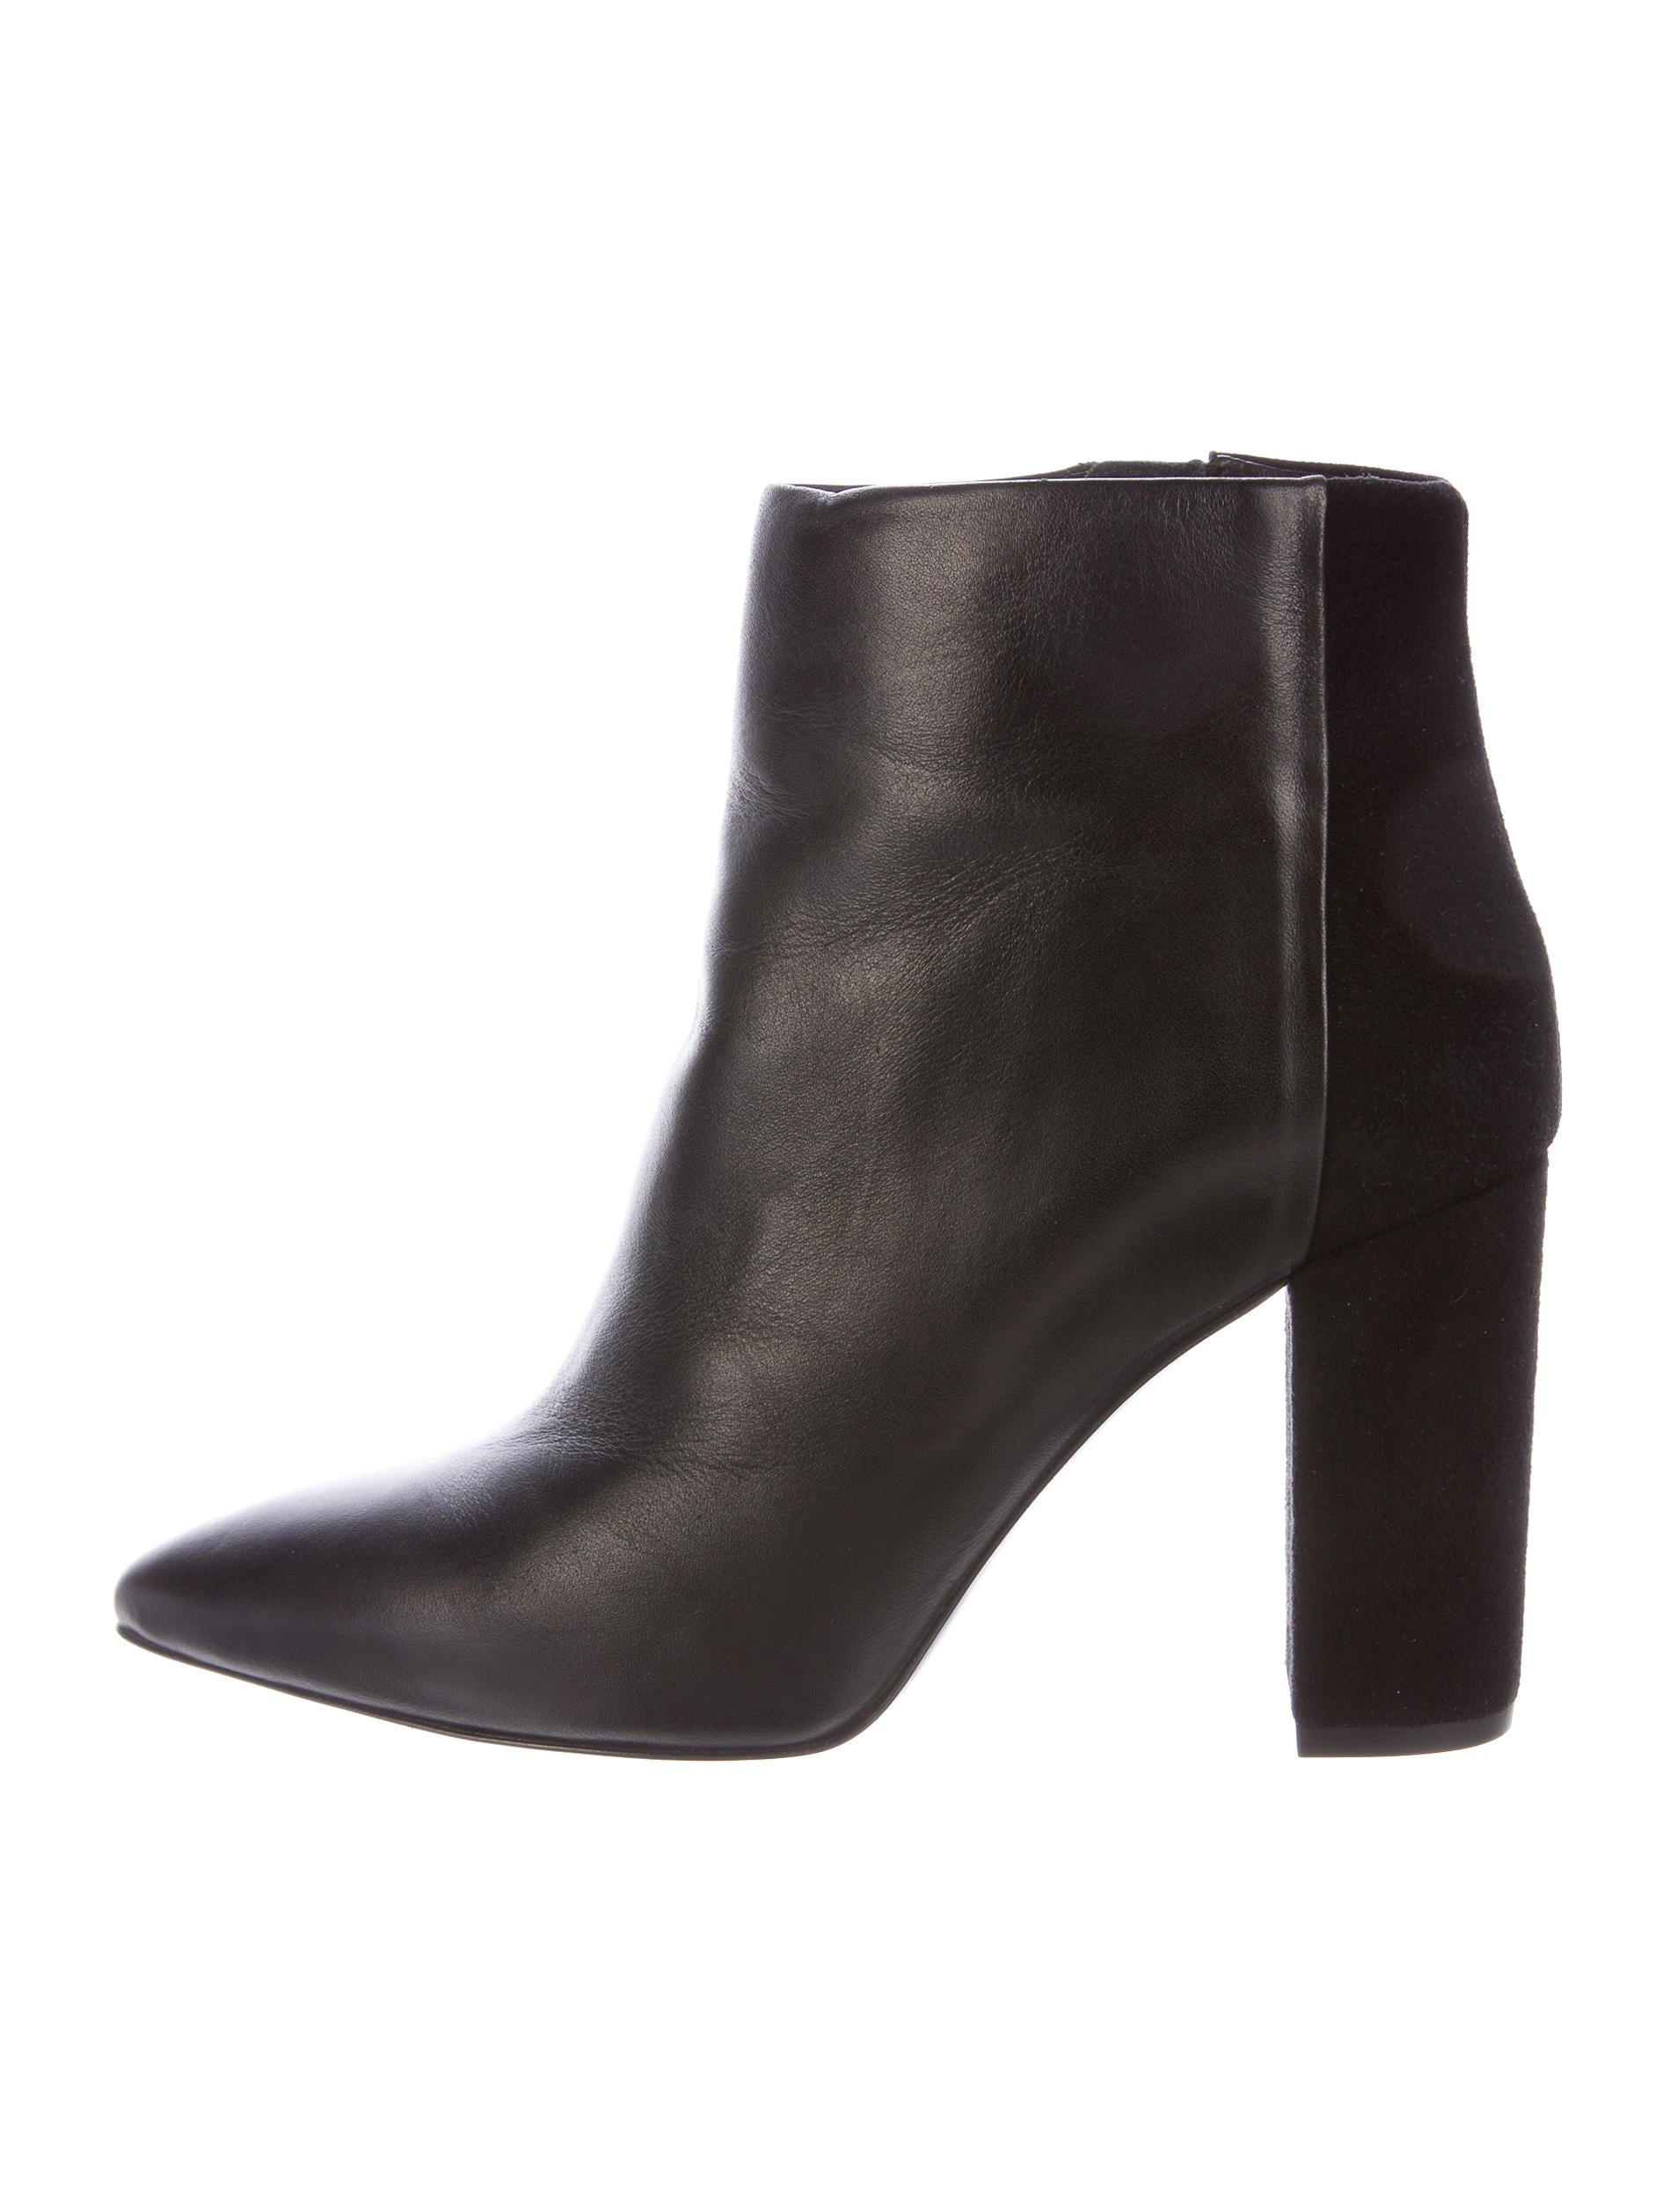 Iro Pointed-Toe Ankle Boots wiki online official online 1VMfC17kl